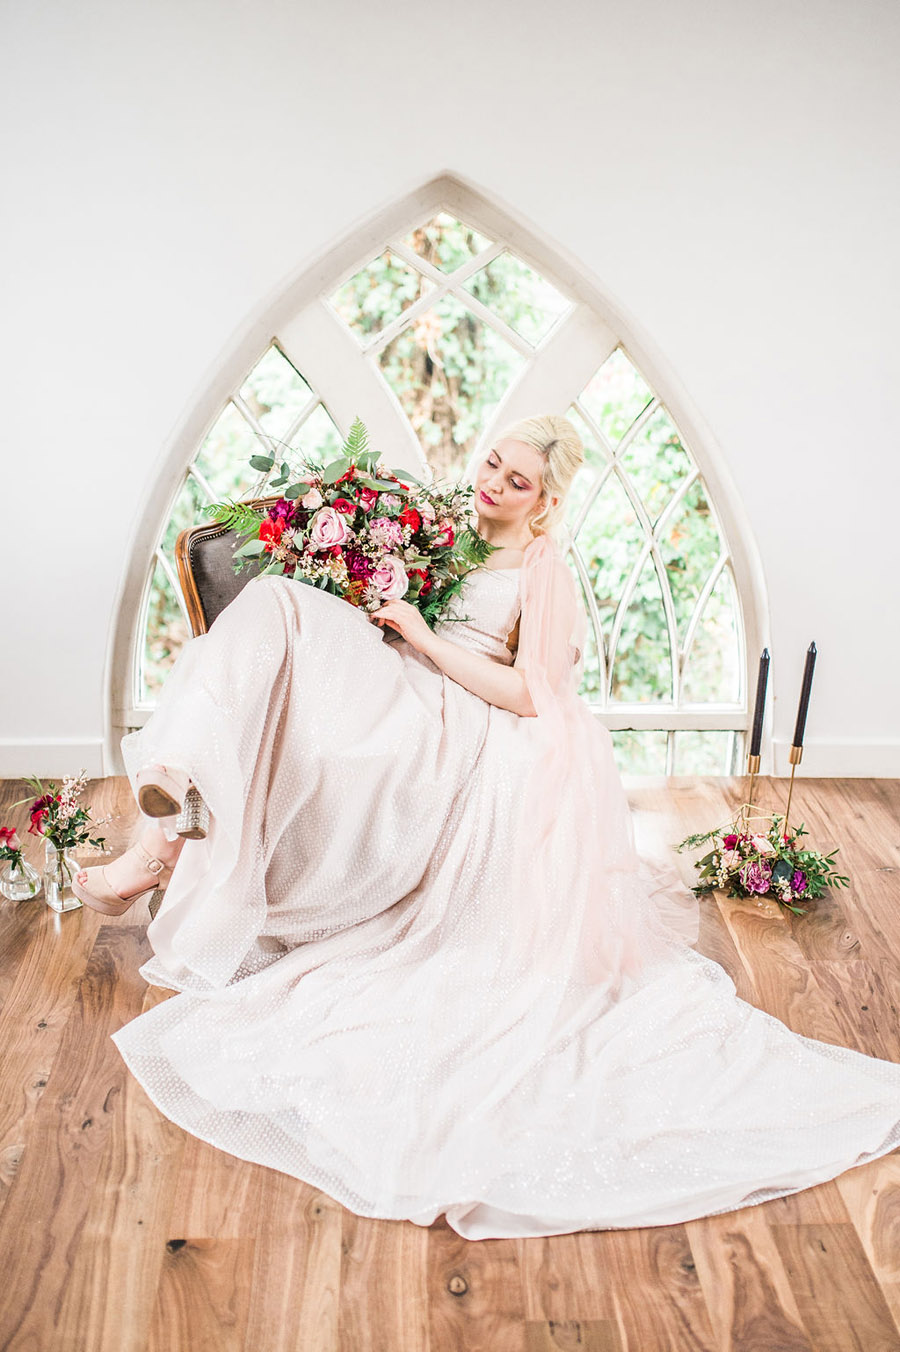 Modern luxe wedding style ideas with images by Laura Jane Photography (12)